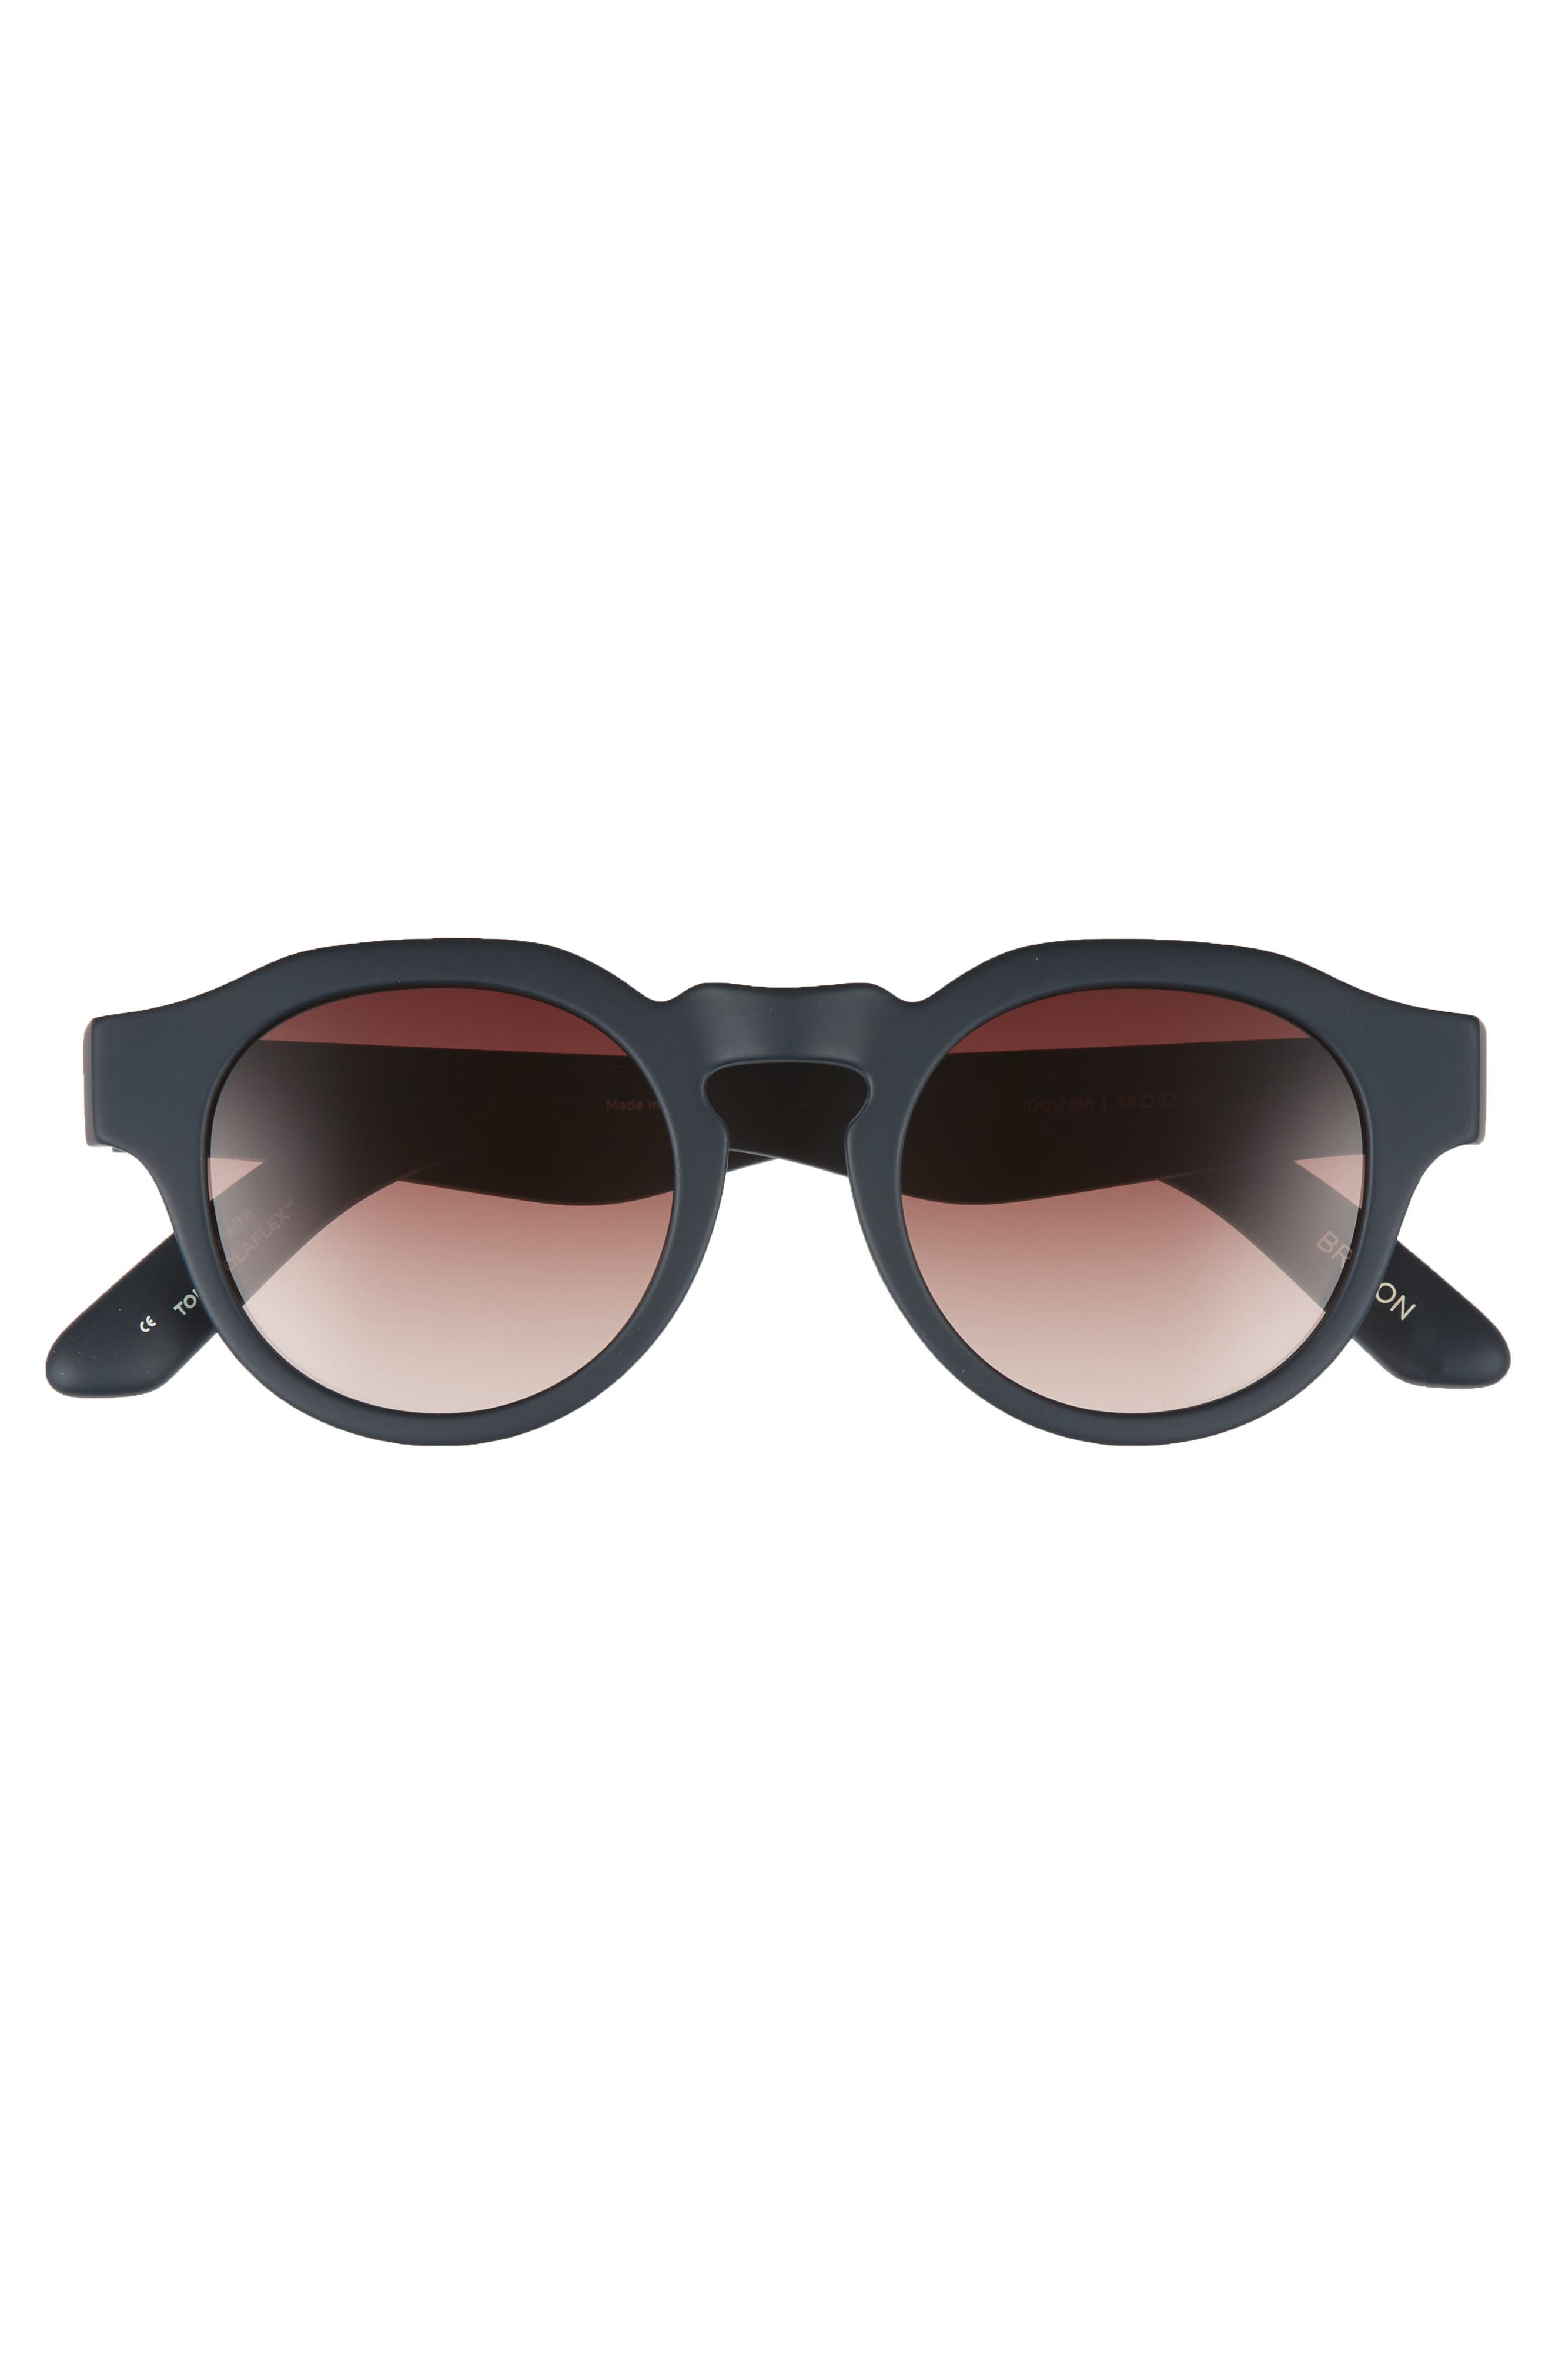 Bryton 48mm Sunglasses,                             Alternate thumbnail 2, color,                             Blueberry